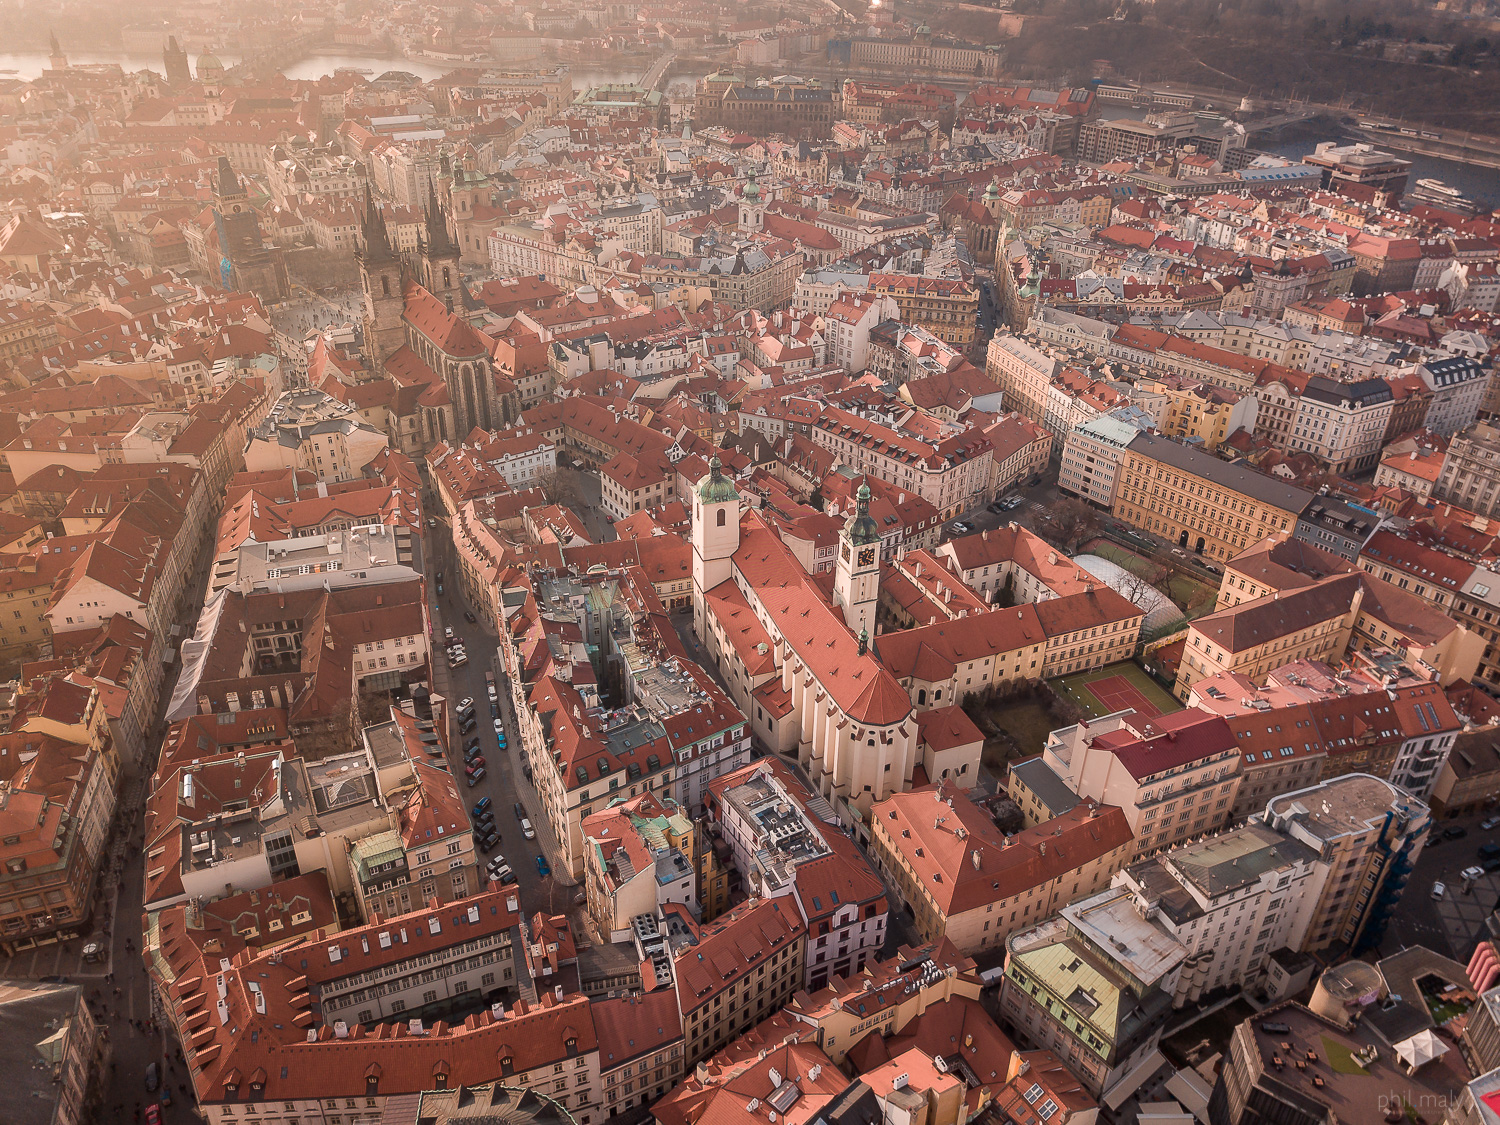 Drone shot of the Prag old town with its many rooftops